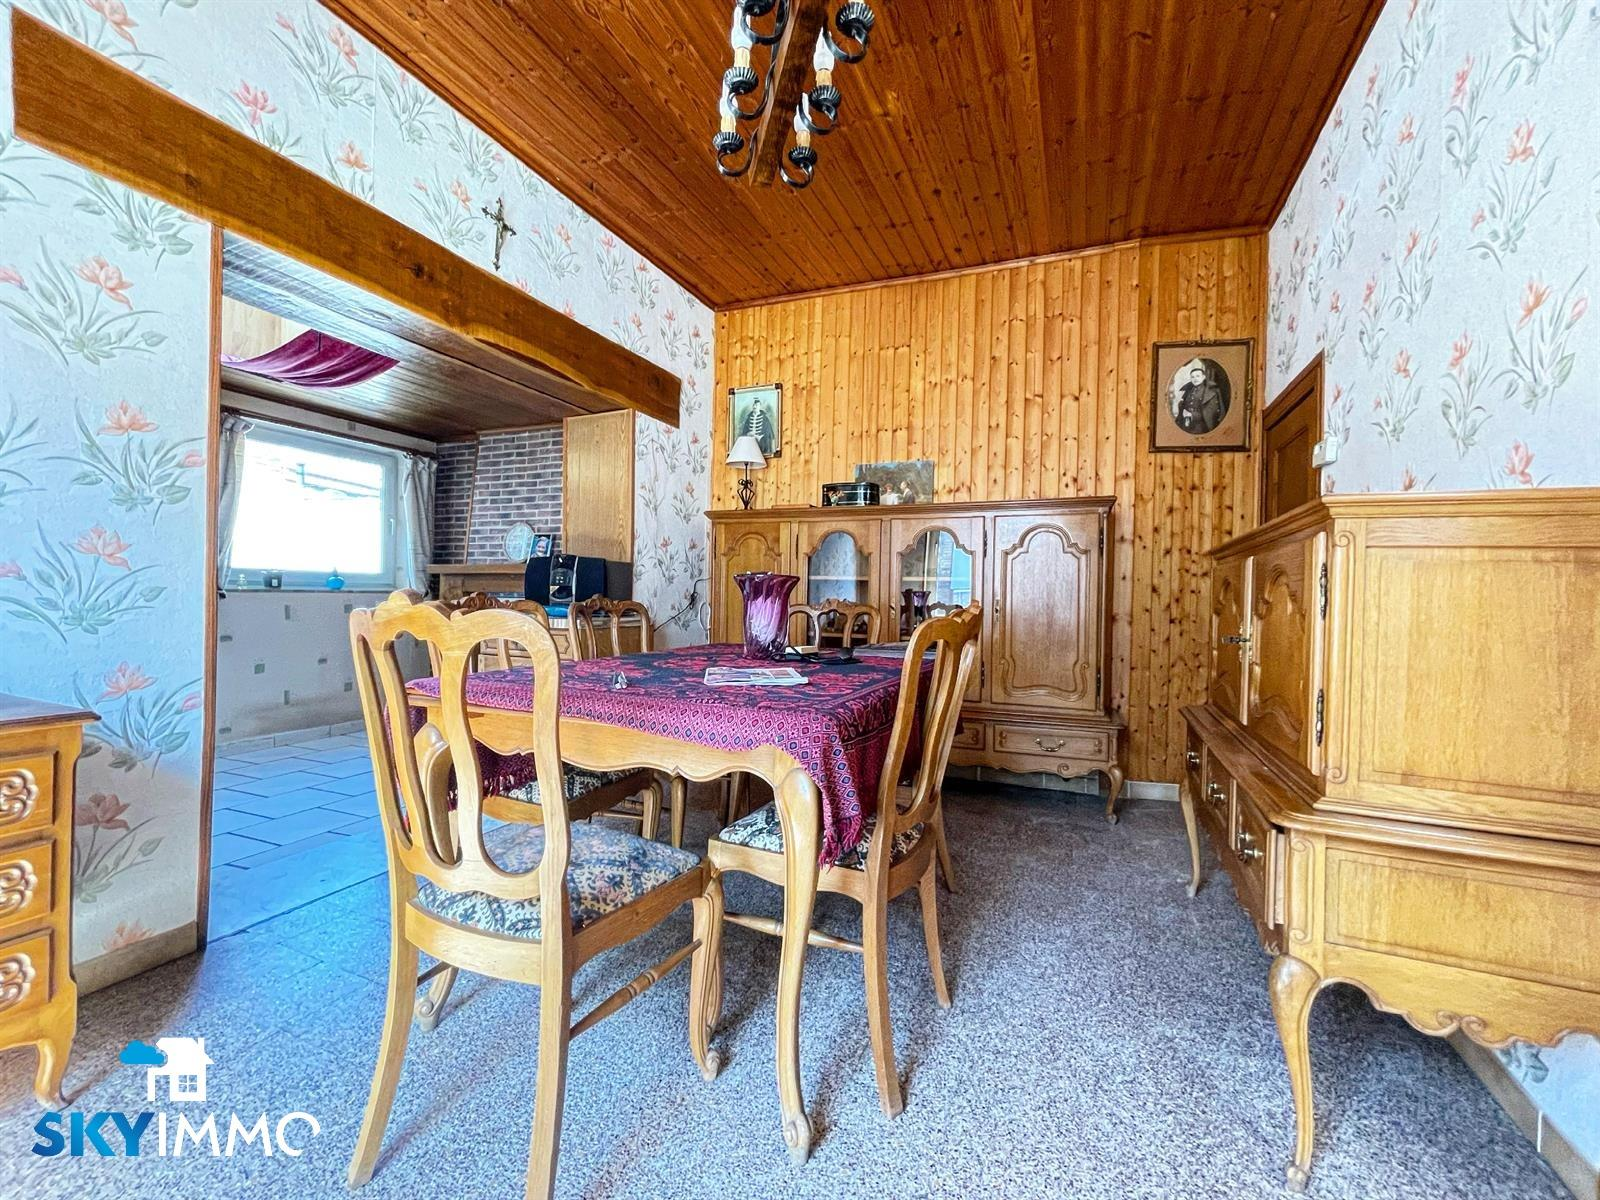 Huis - Flemalle - #4394734-5